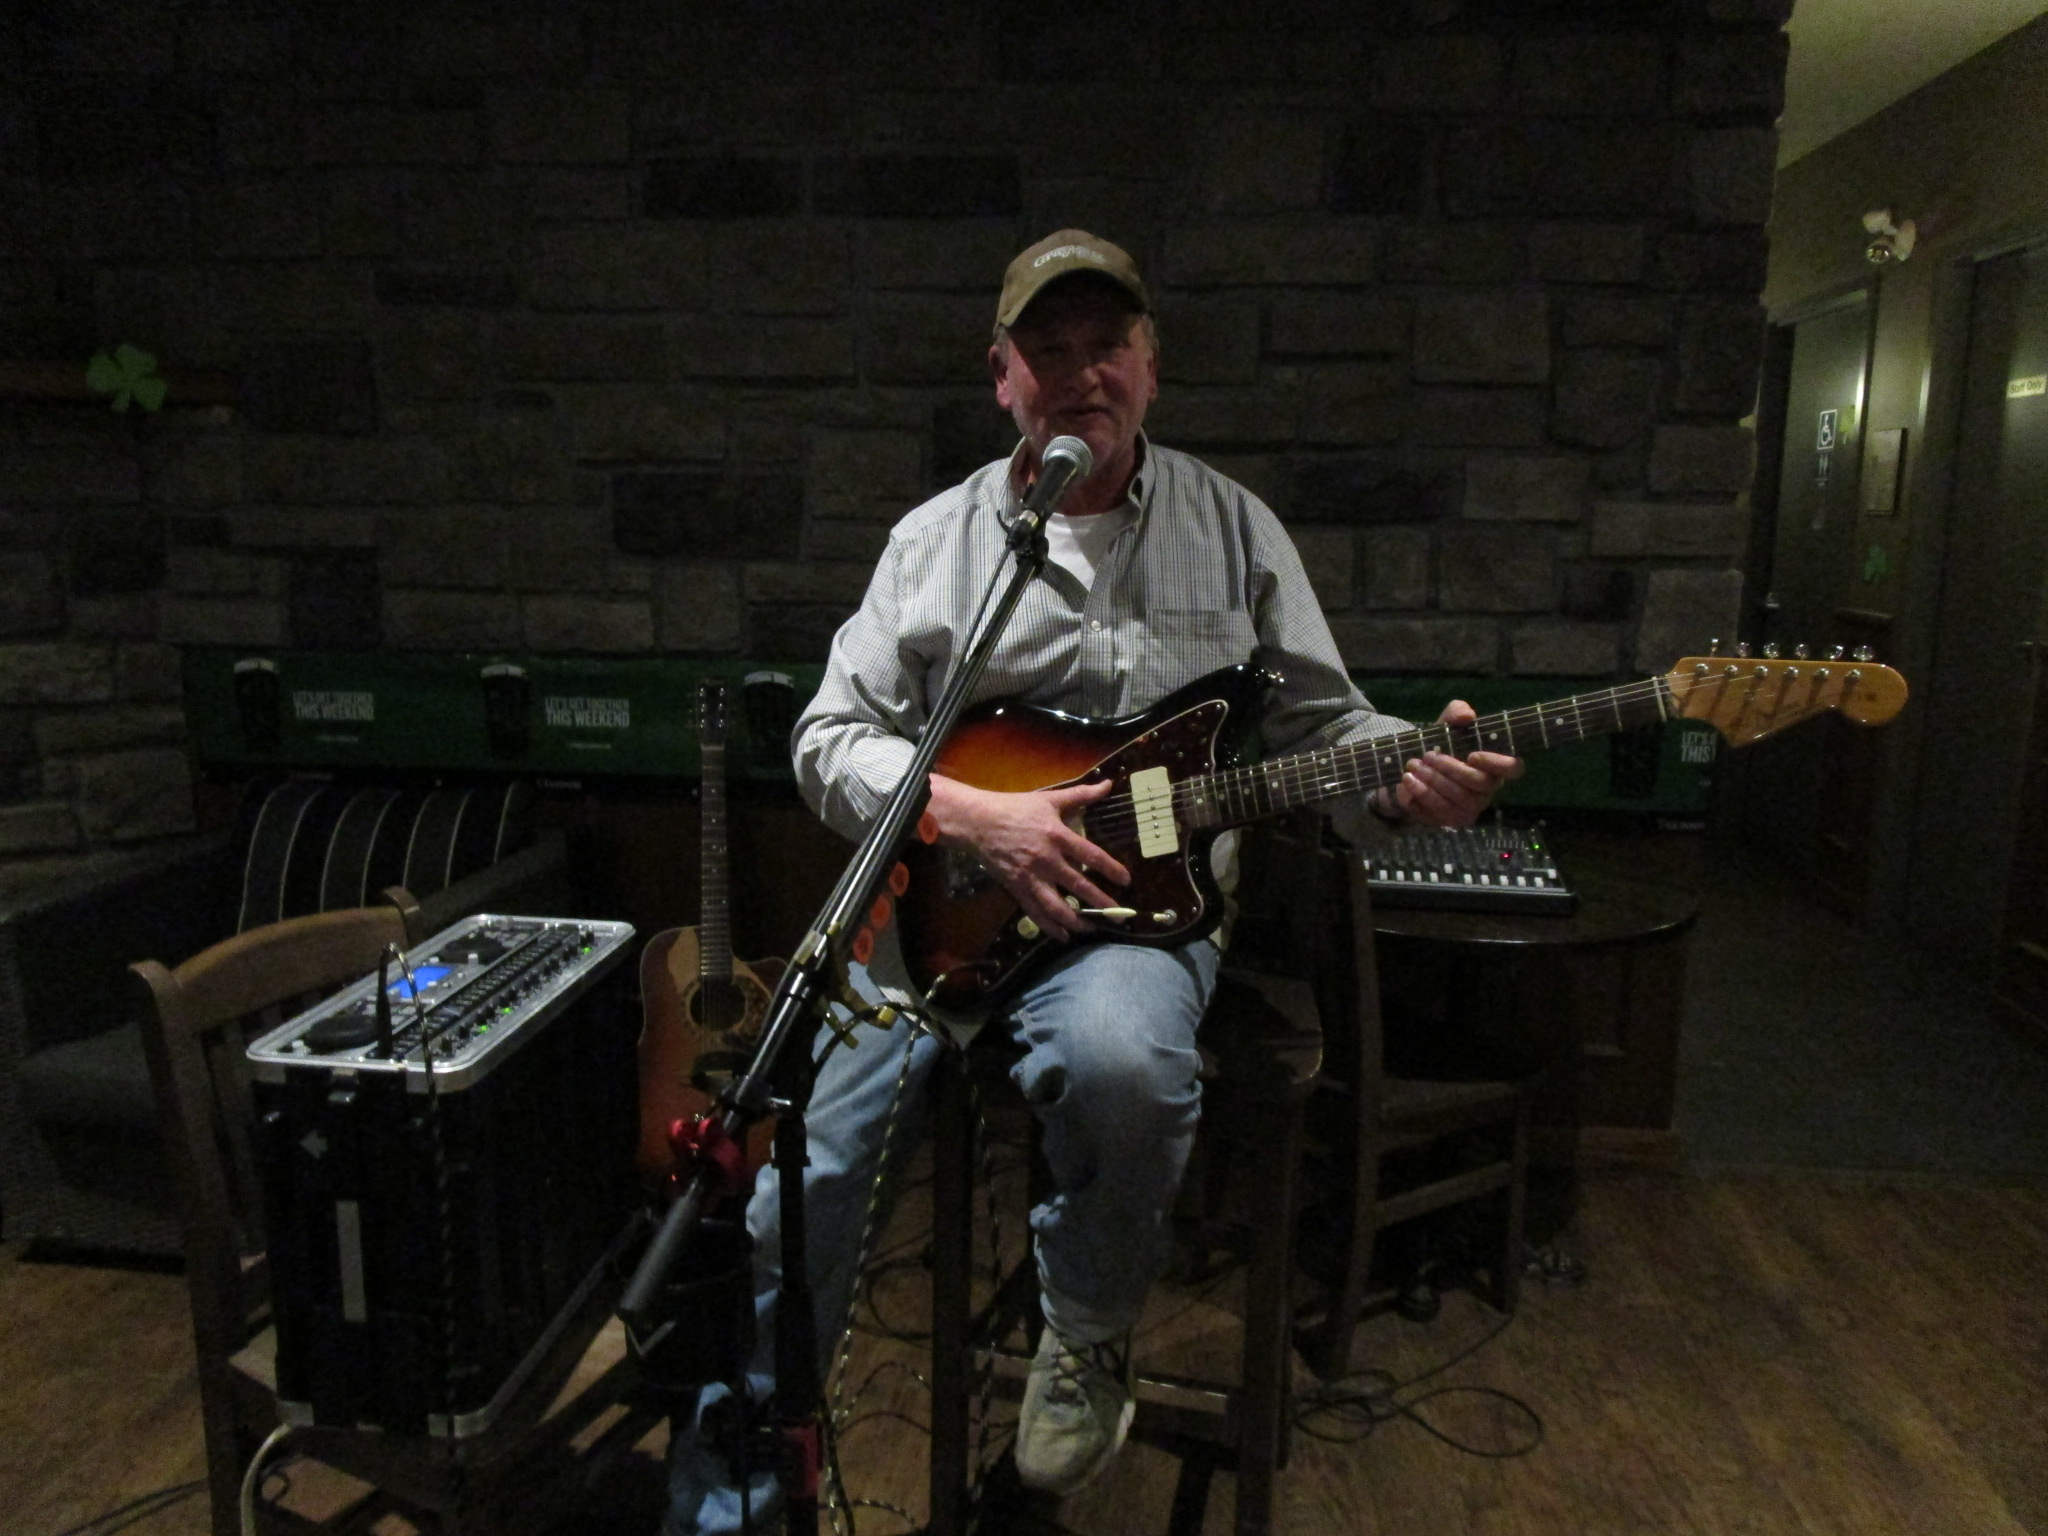 bill werba on guitar